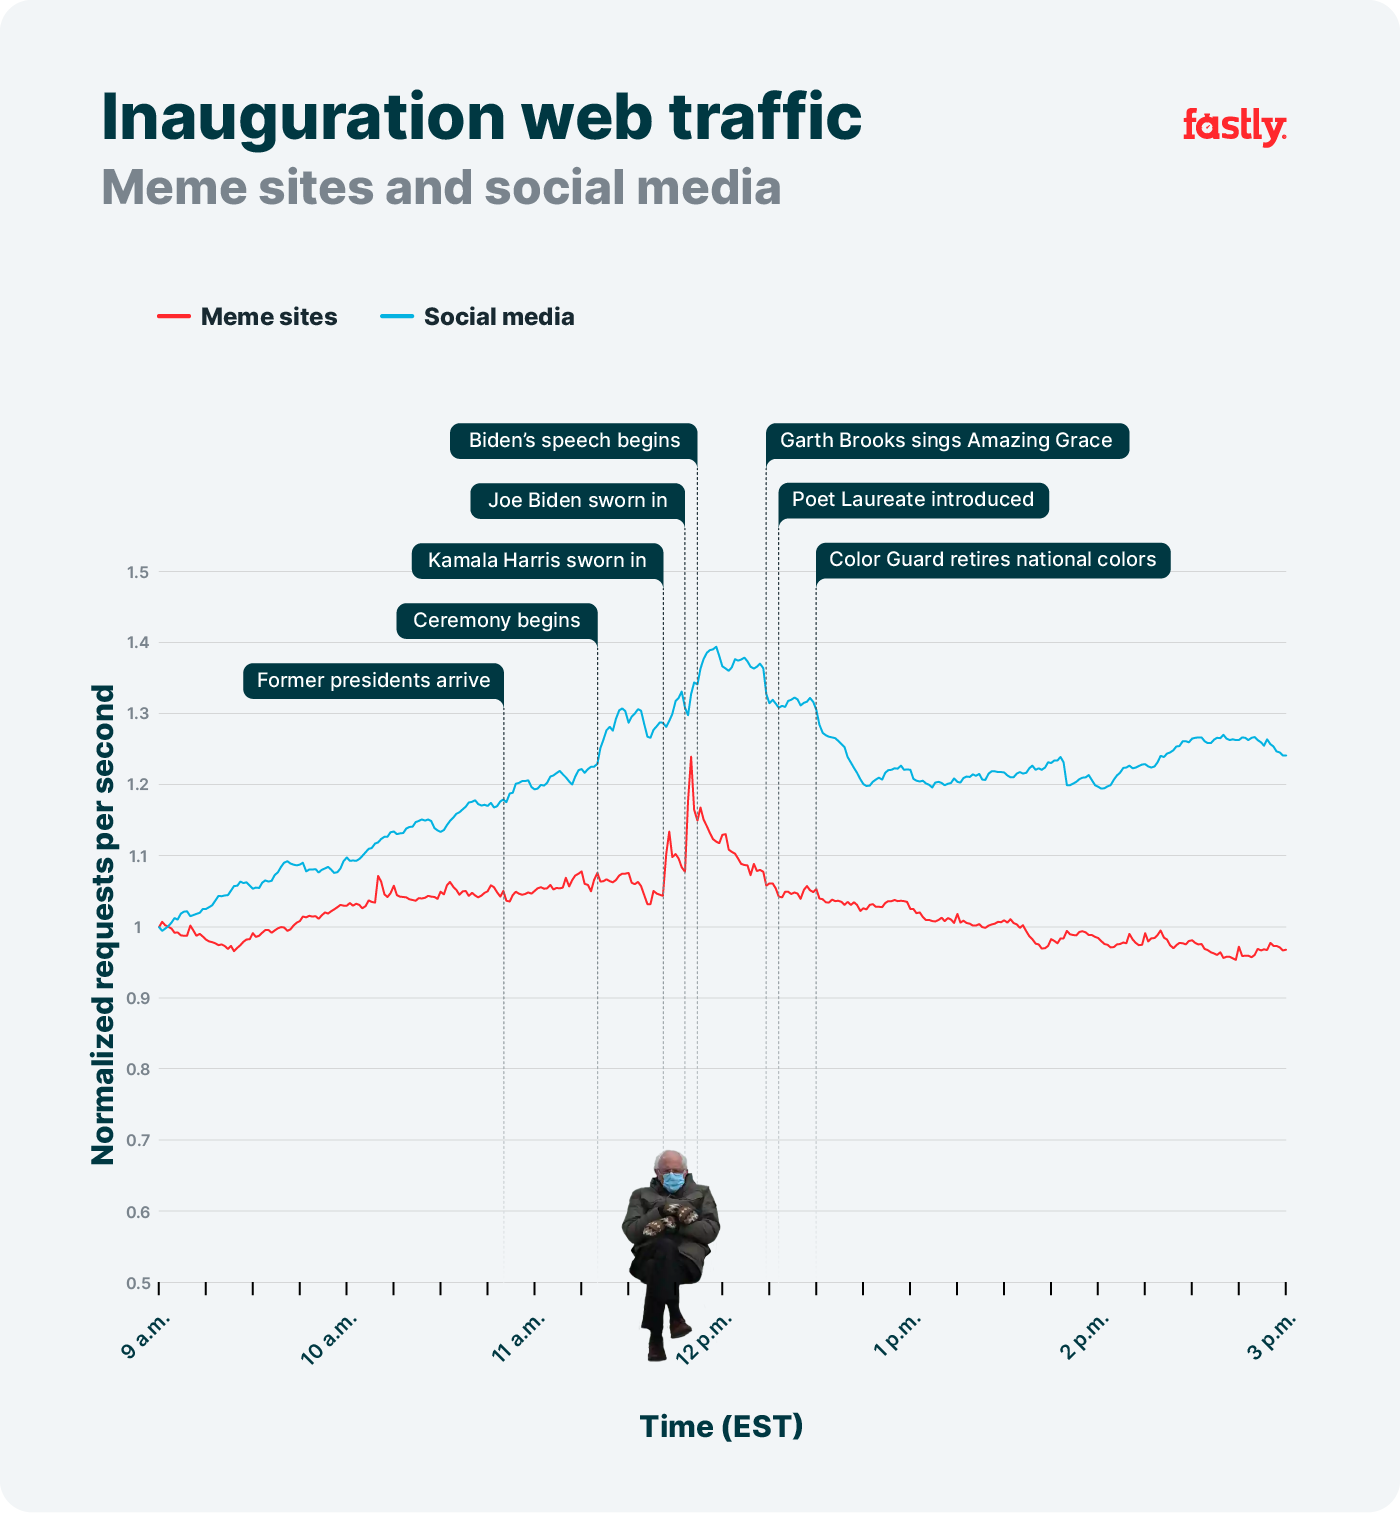 Meme sites and social media during inauguration